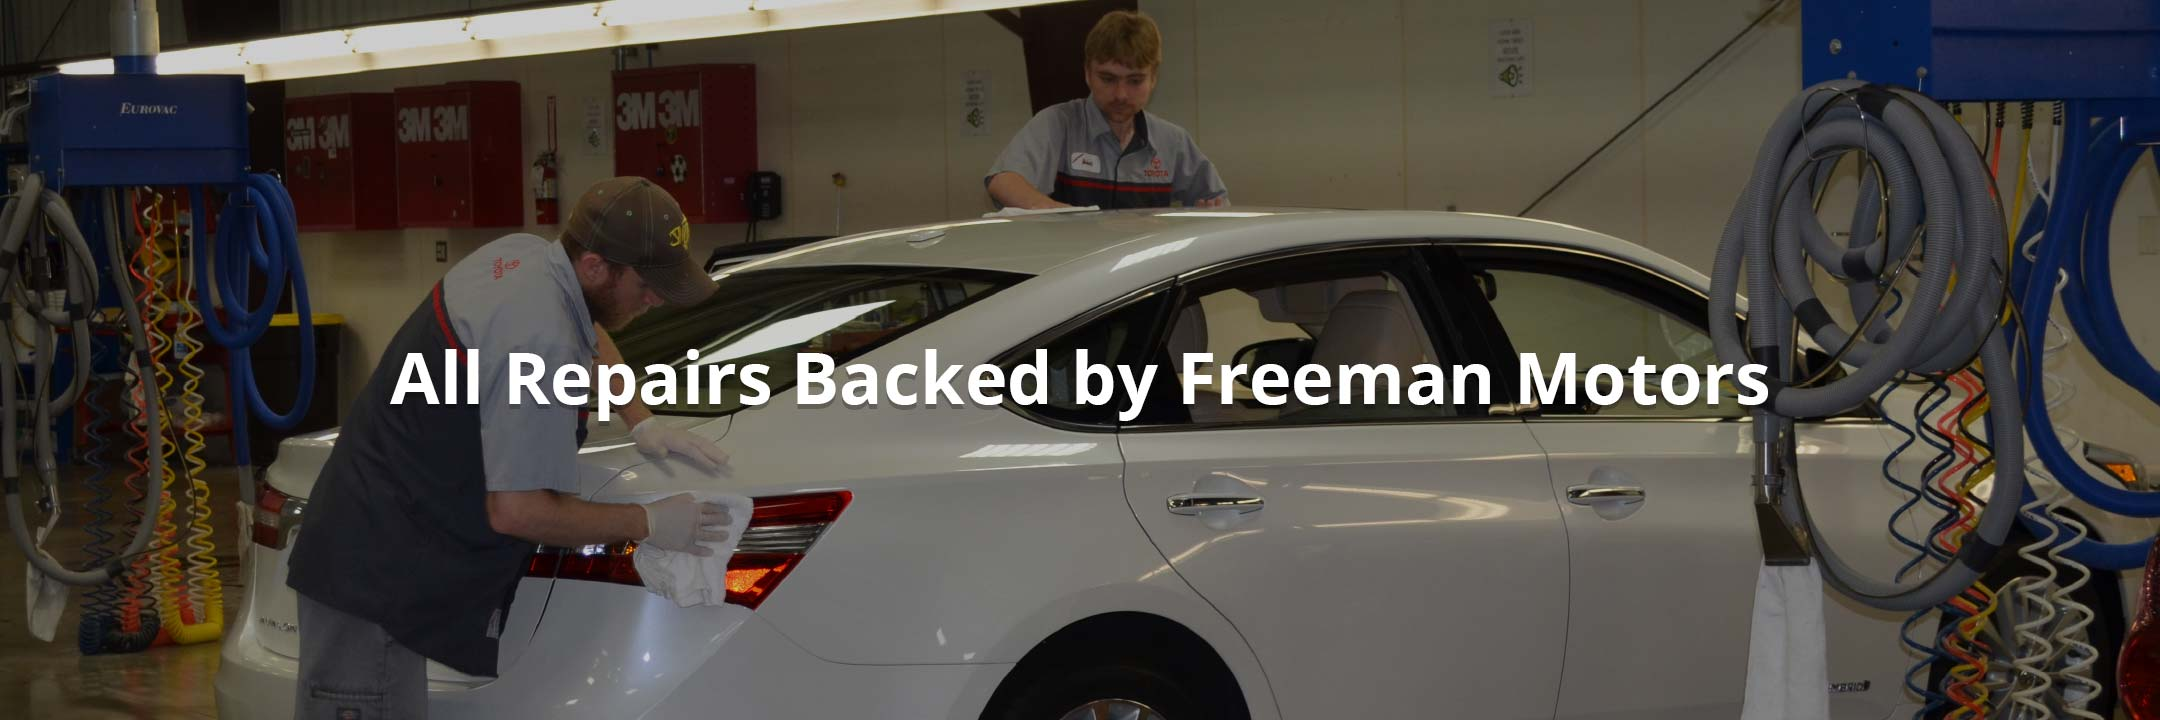 All Repairs Backed by Freeman Motors